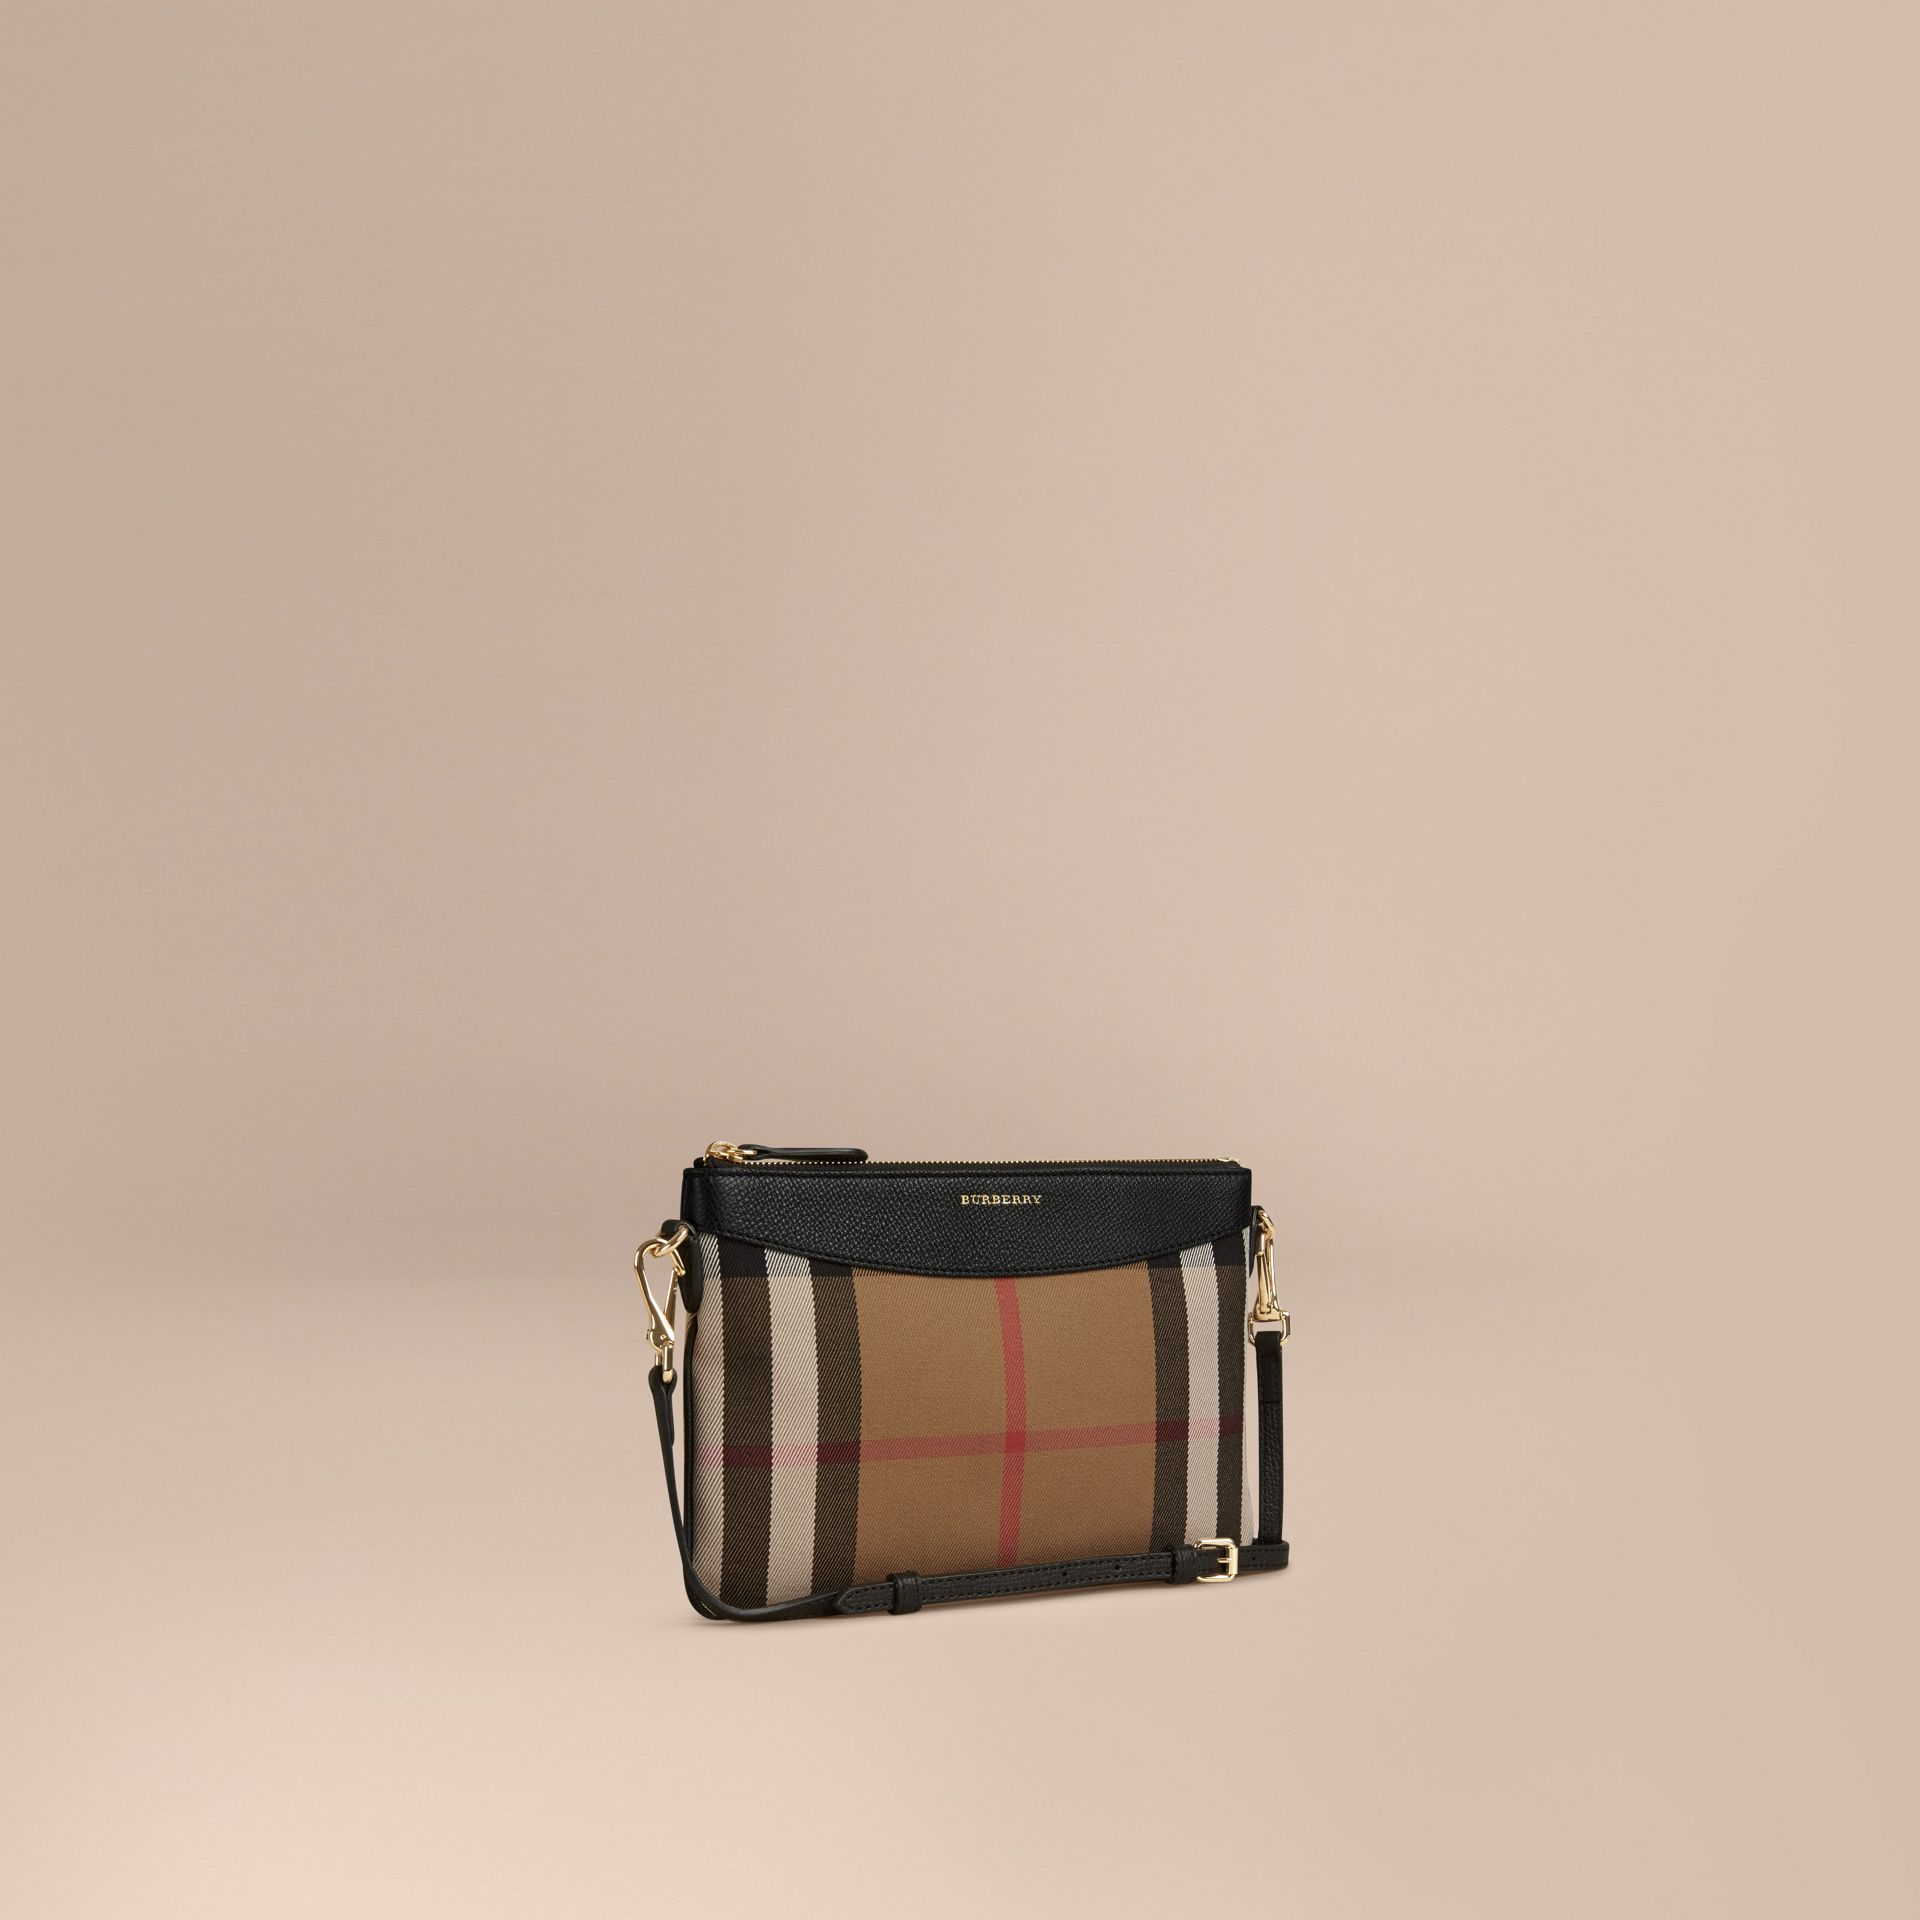 House Check and Leather Clutch Bag in Black - gallery image 1